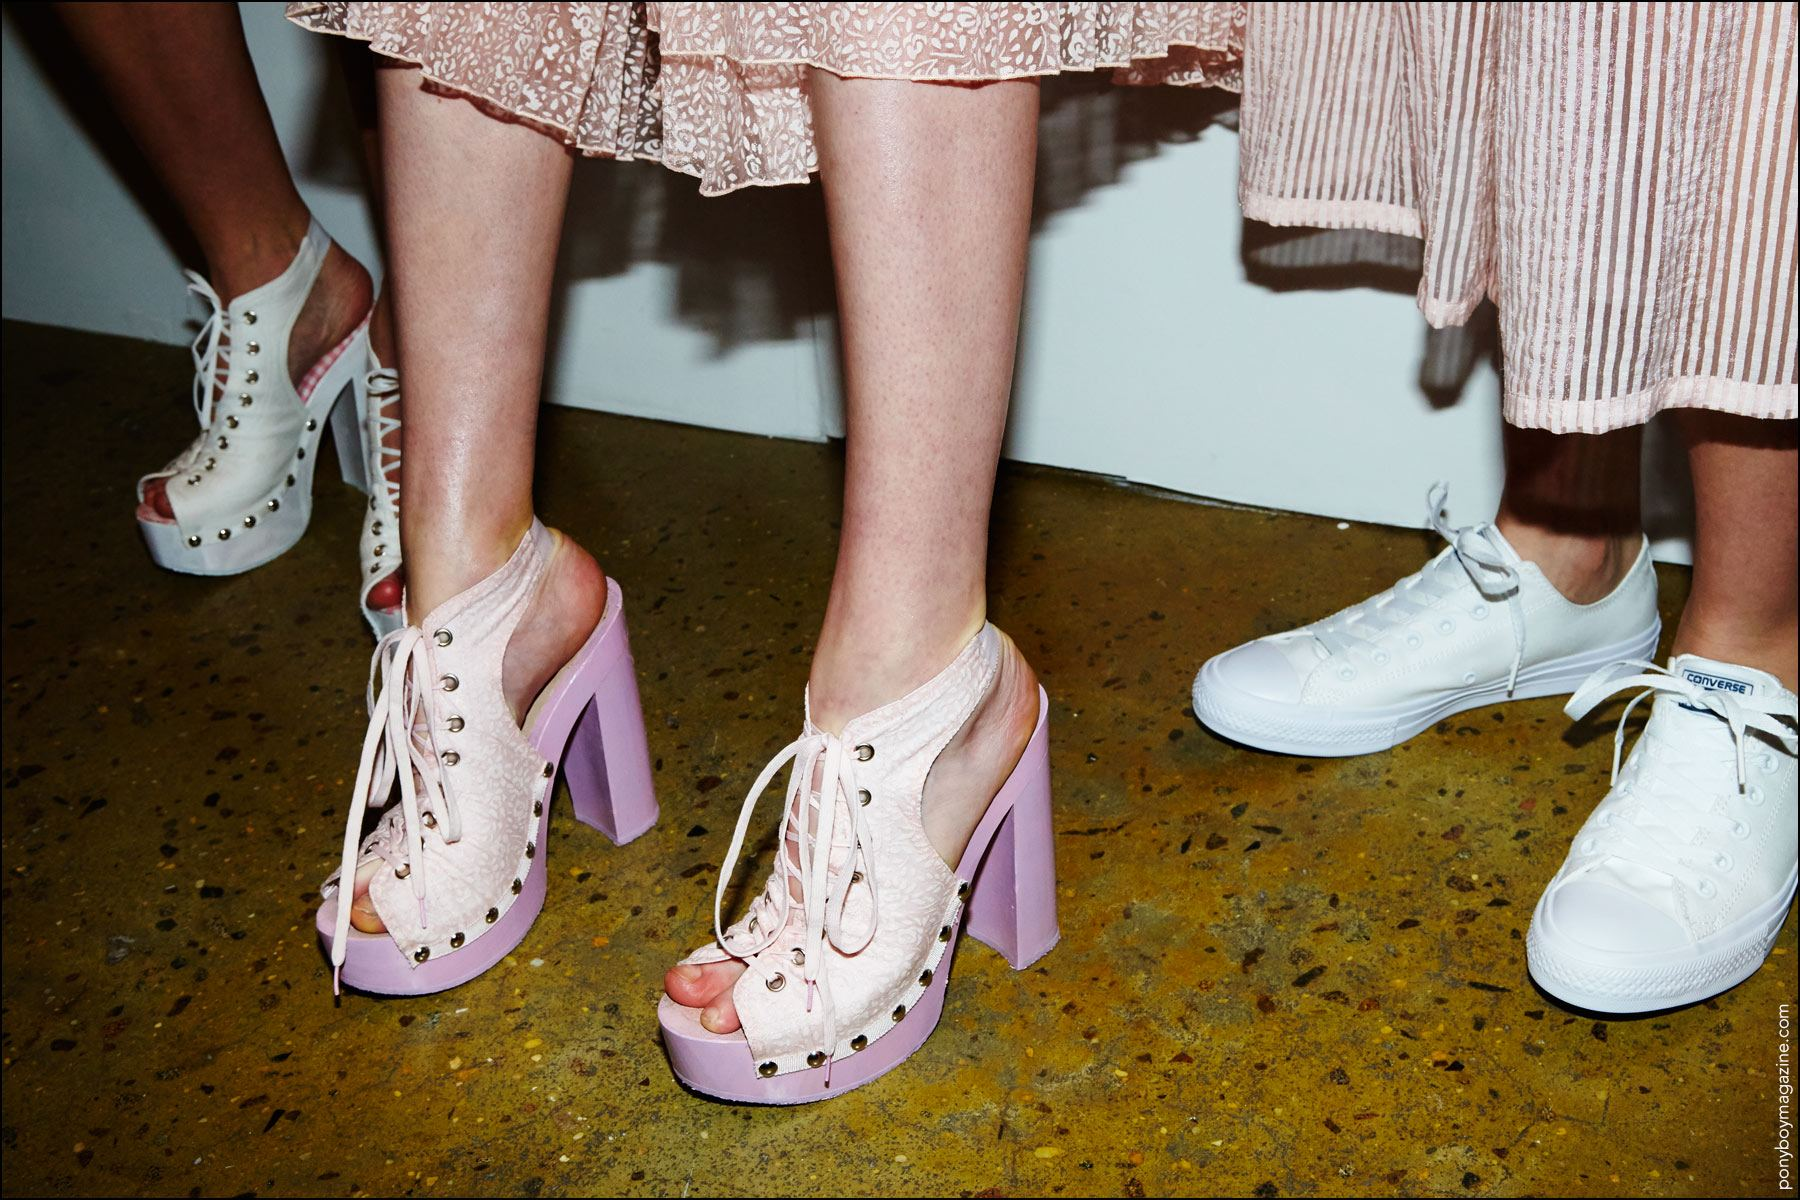 Shoes backstage at the Adam Selman S/S17 show in New York City. Photography by Alexander Thompson for Ponyboy magazine.